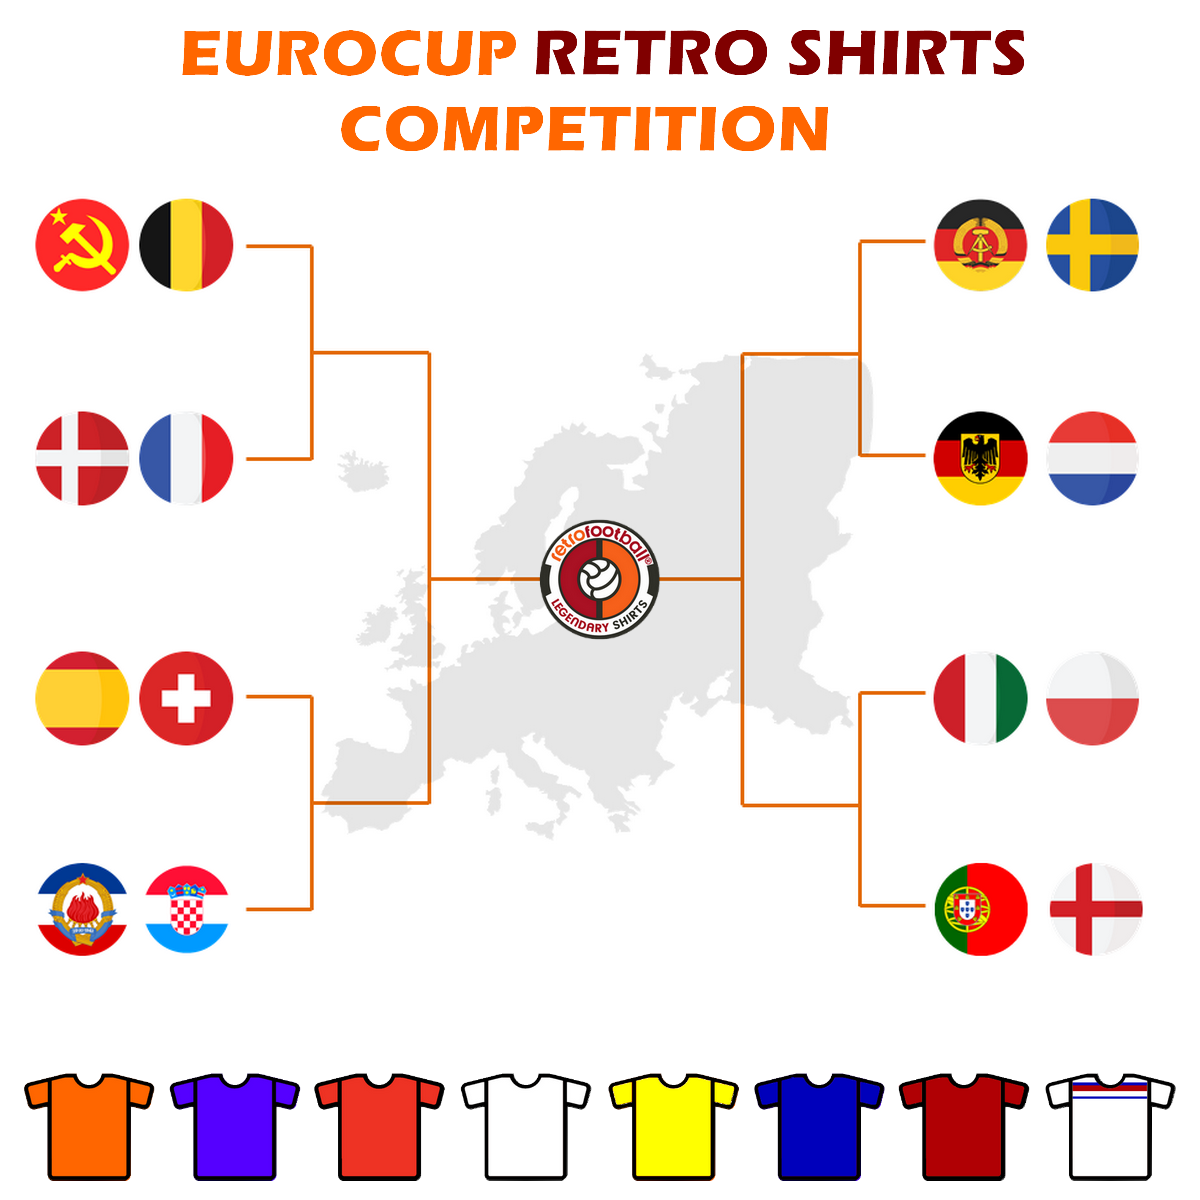 Eurocup Retro Shirt Competition